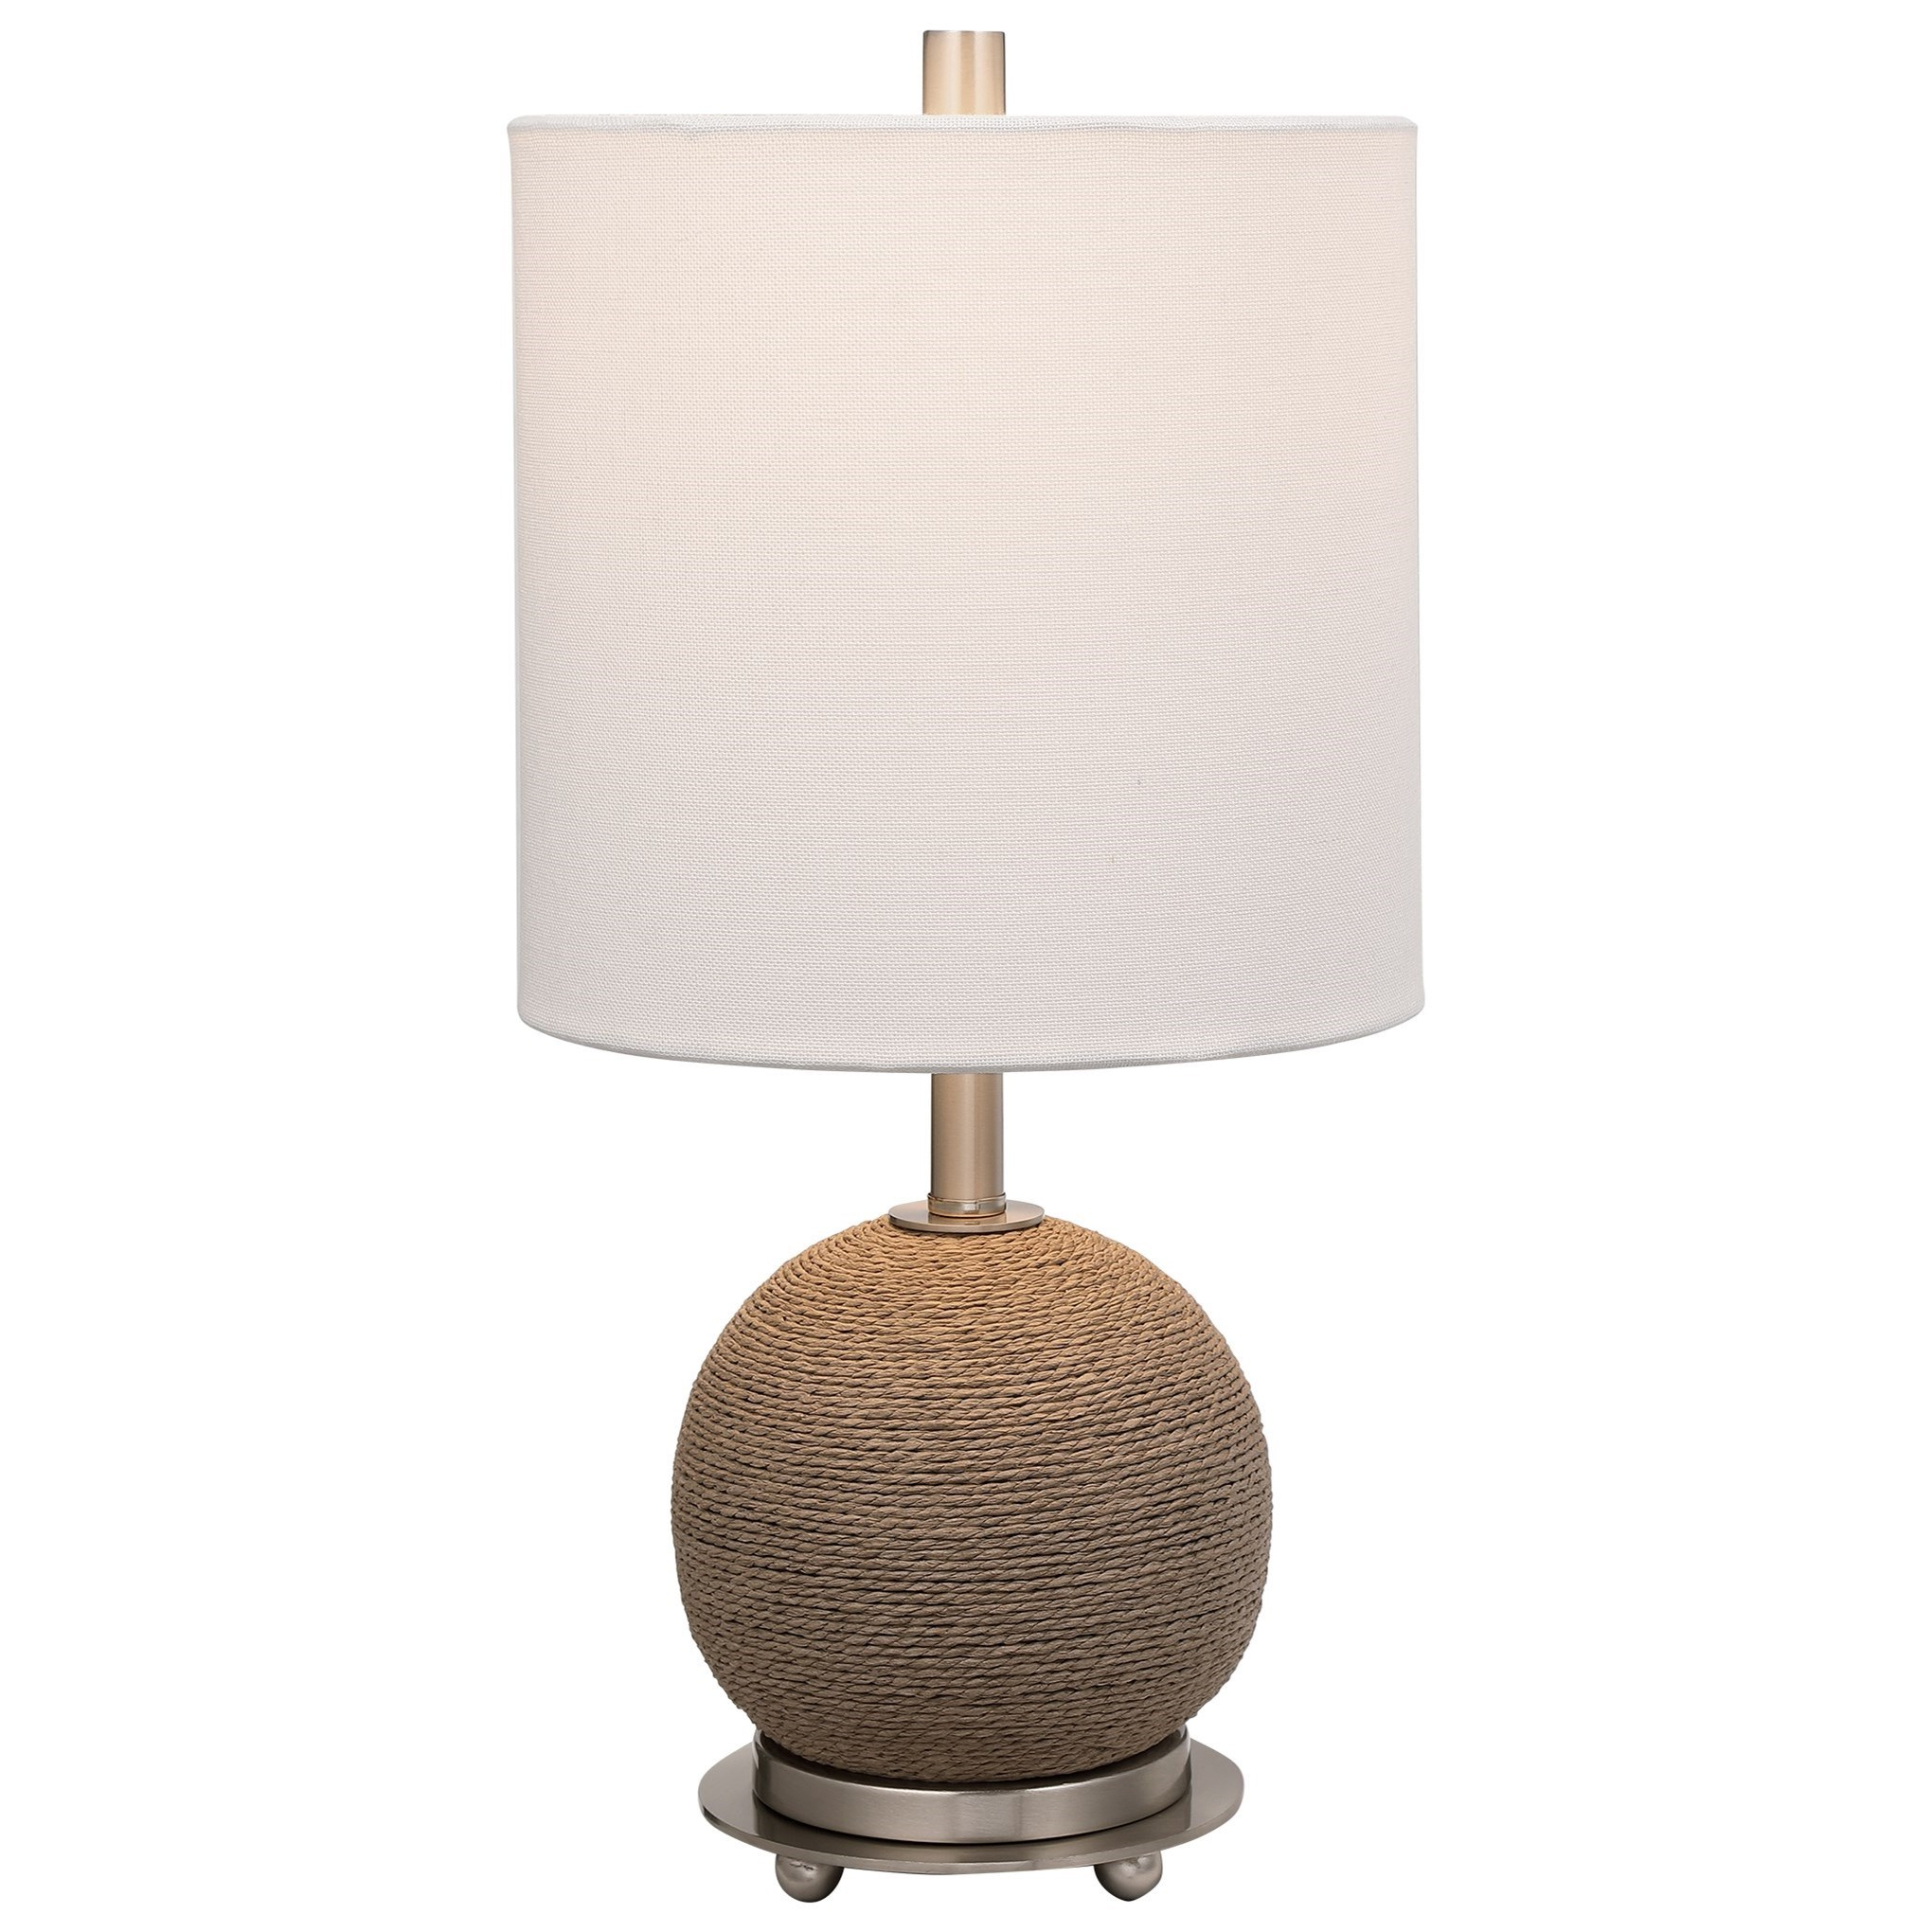 Accent Lamps Captiva Rattan Accent Lamp by Uttermost at Stuckey Furniture